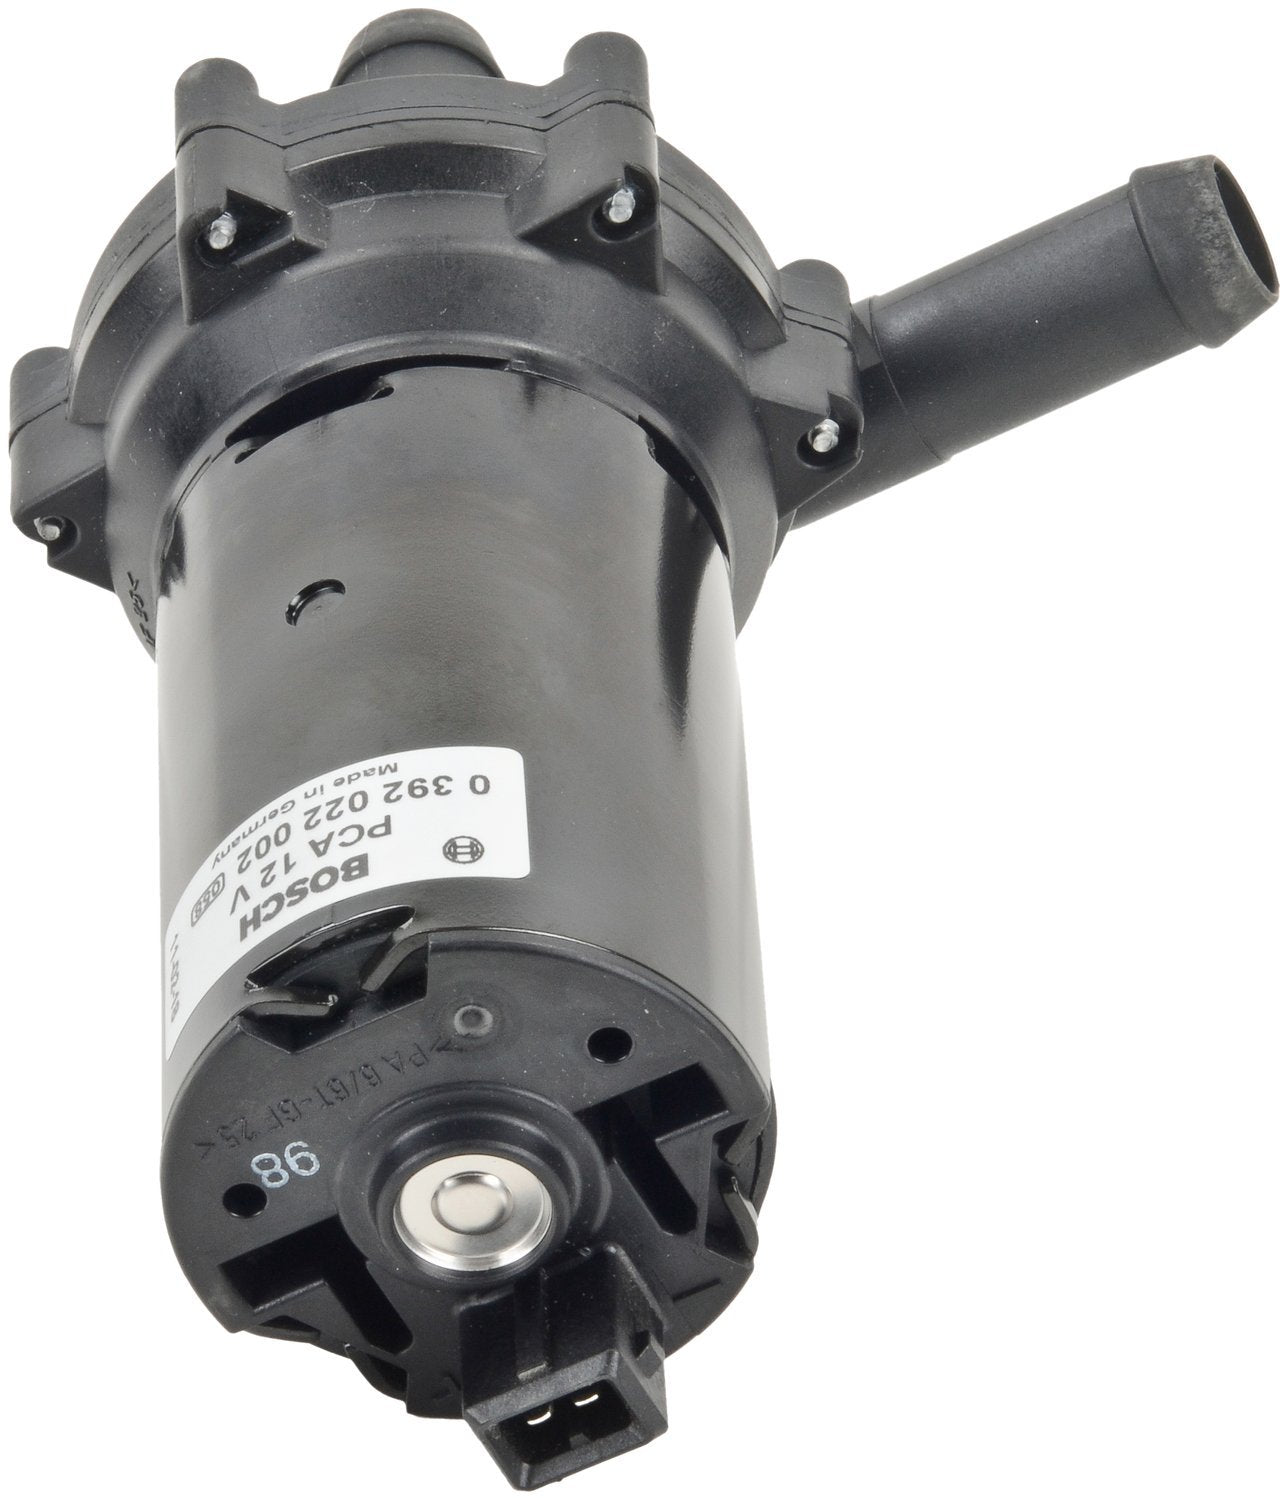 Bosch Universal CTS-V Heat Exchanger Pump | BoostDistrict